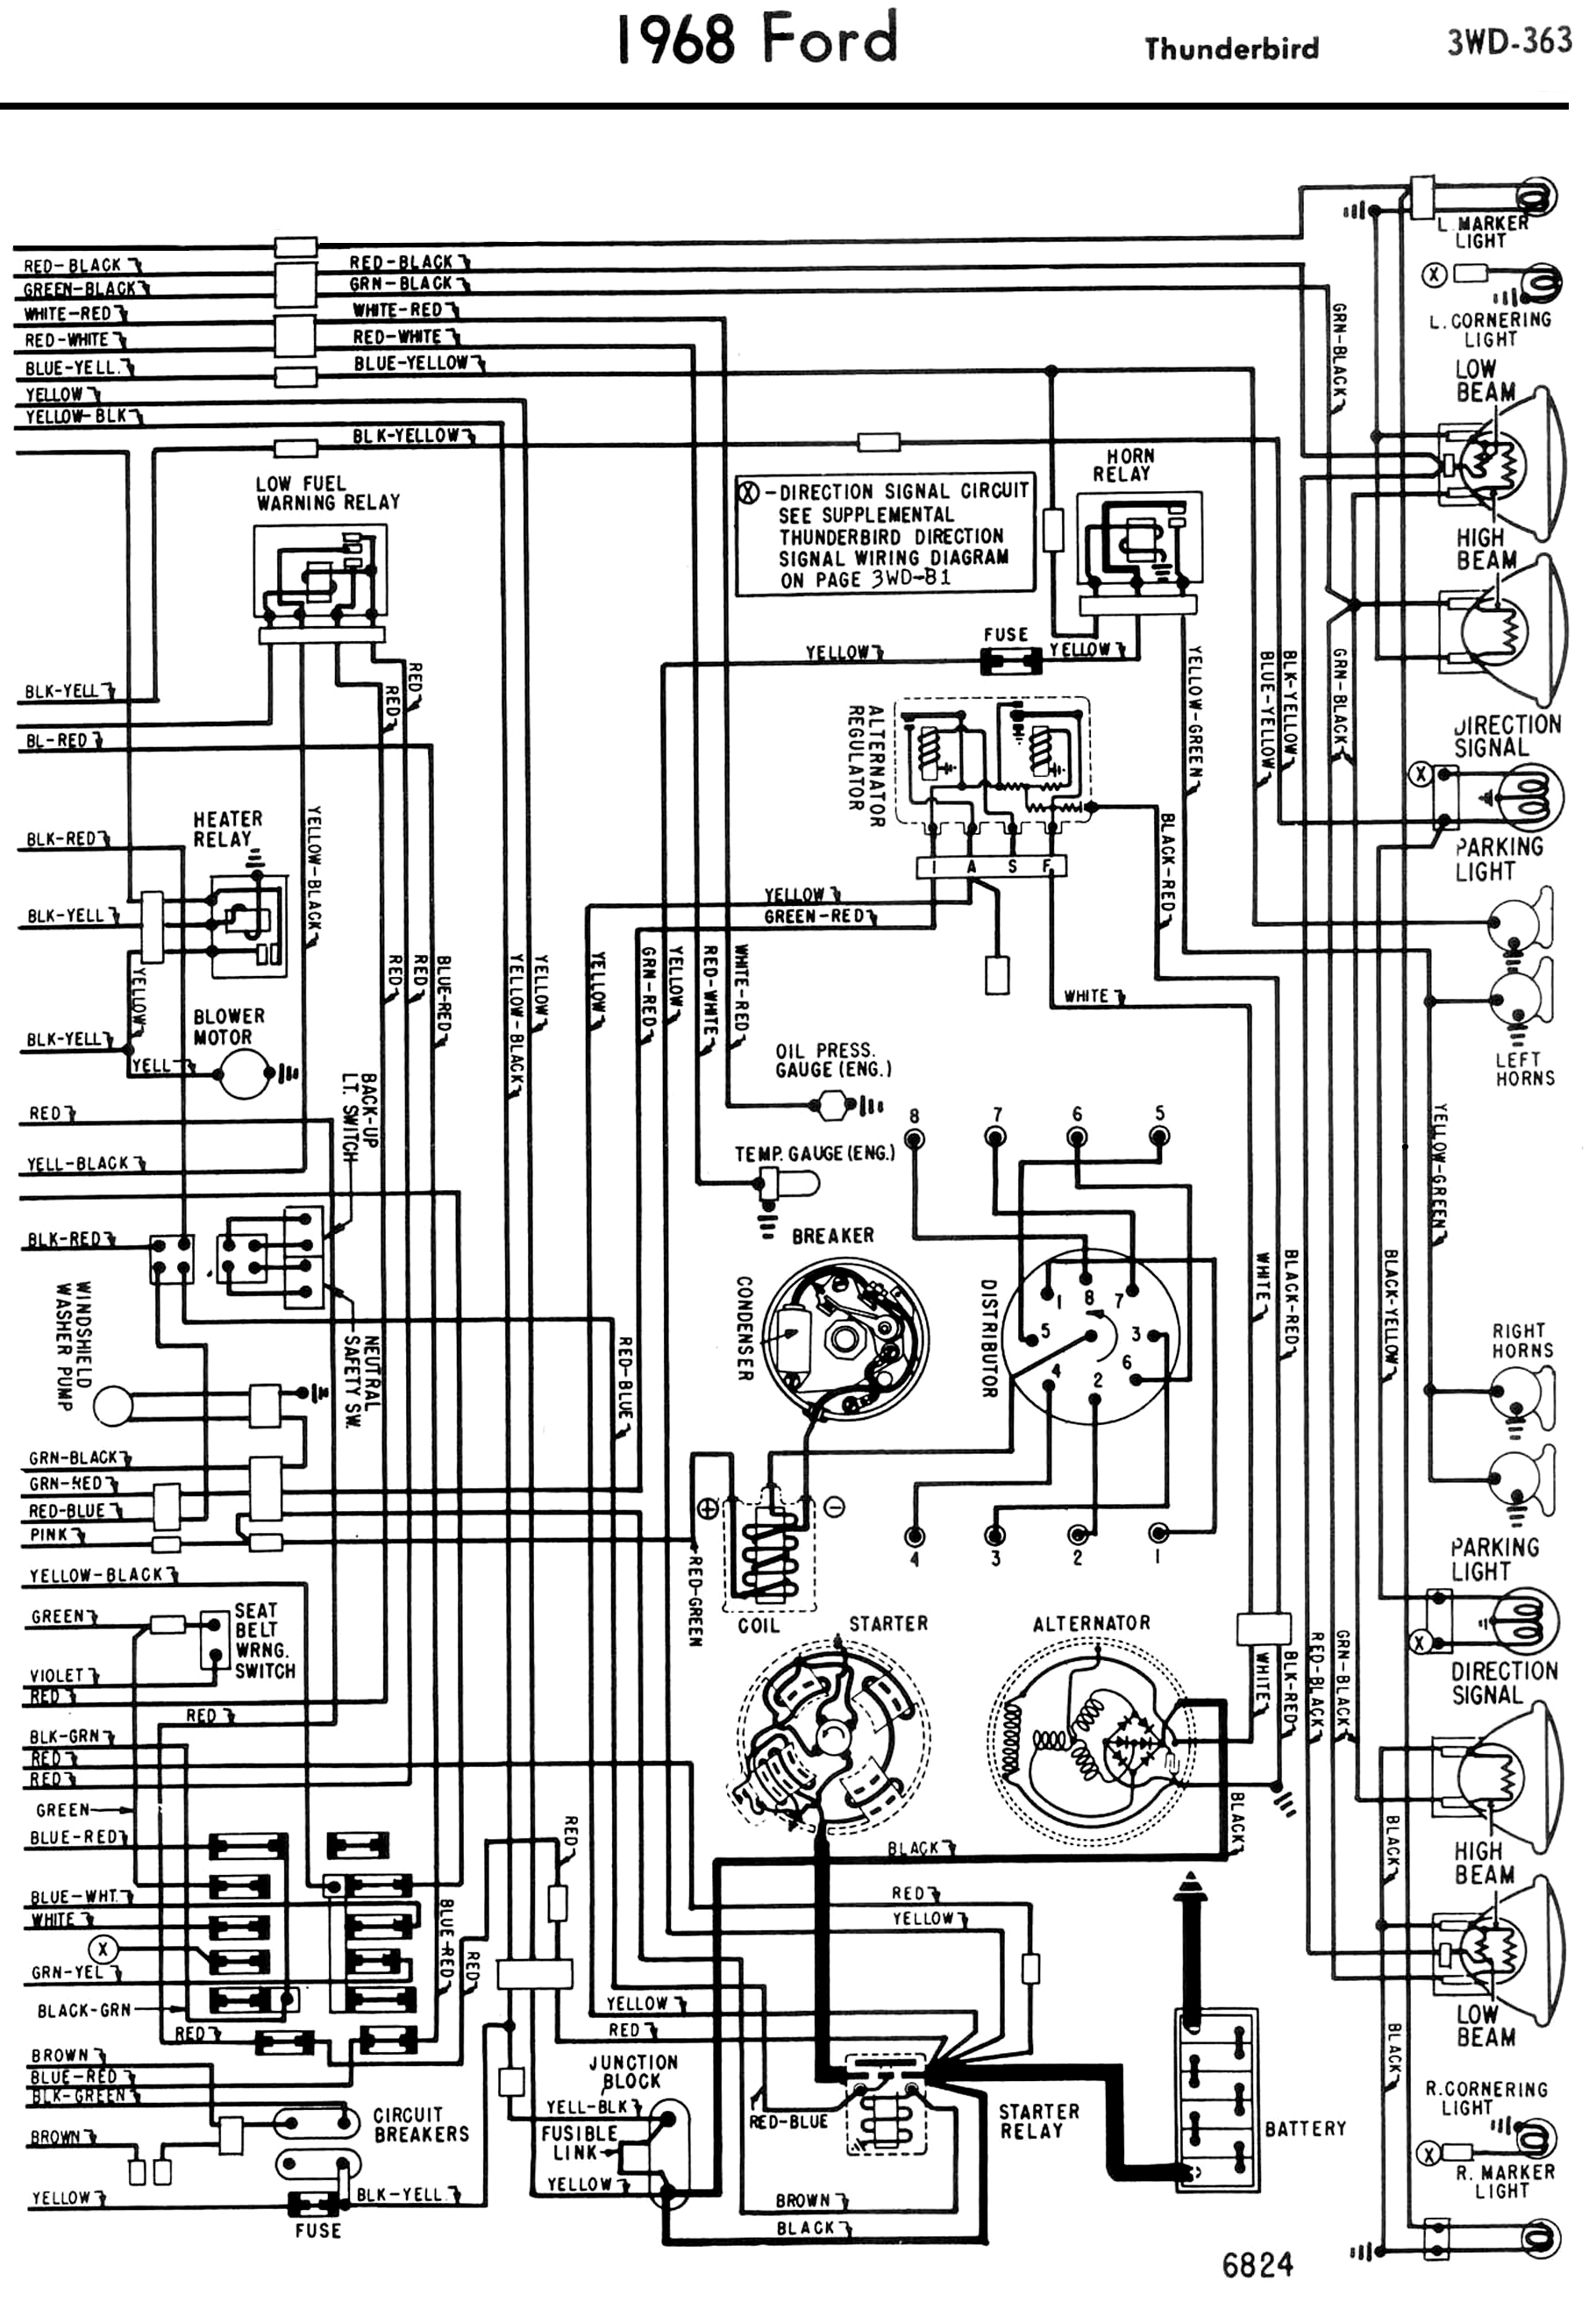 1965 ford thunderbird turn signal wiring diagram 1965 funny wiring schematics pool heater wiring schematics